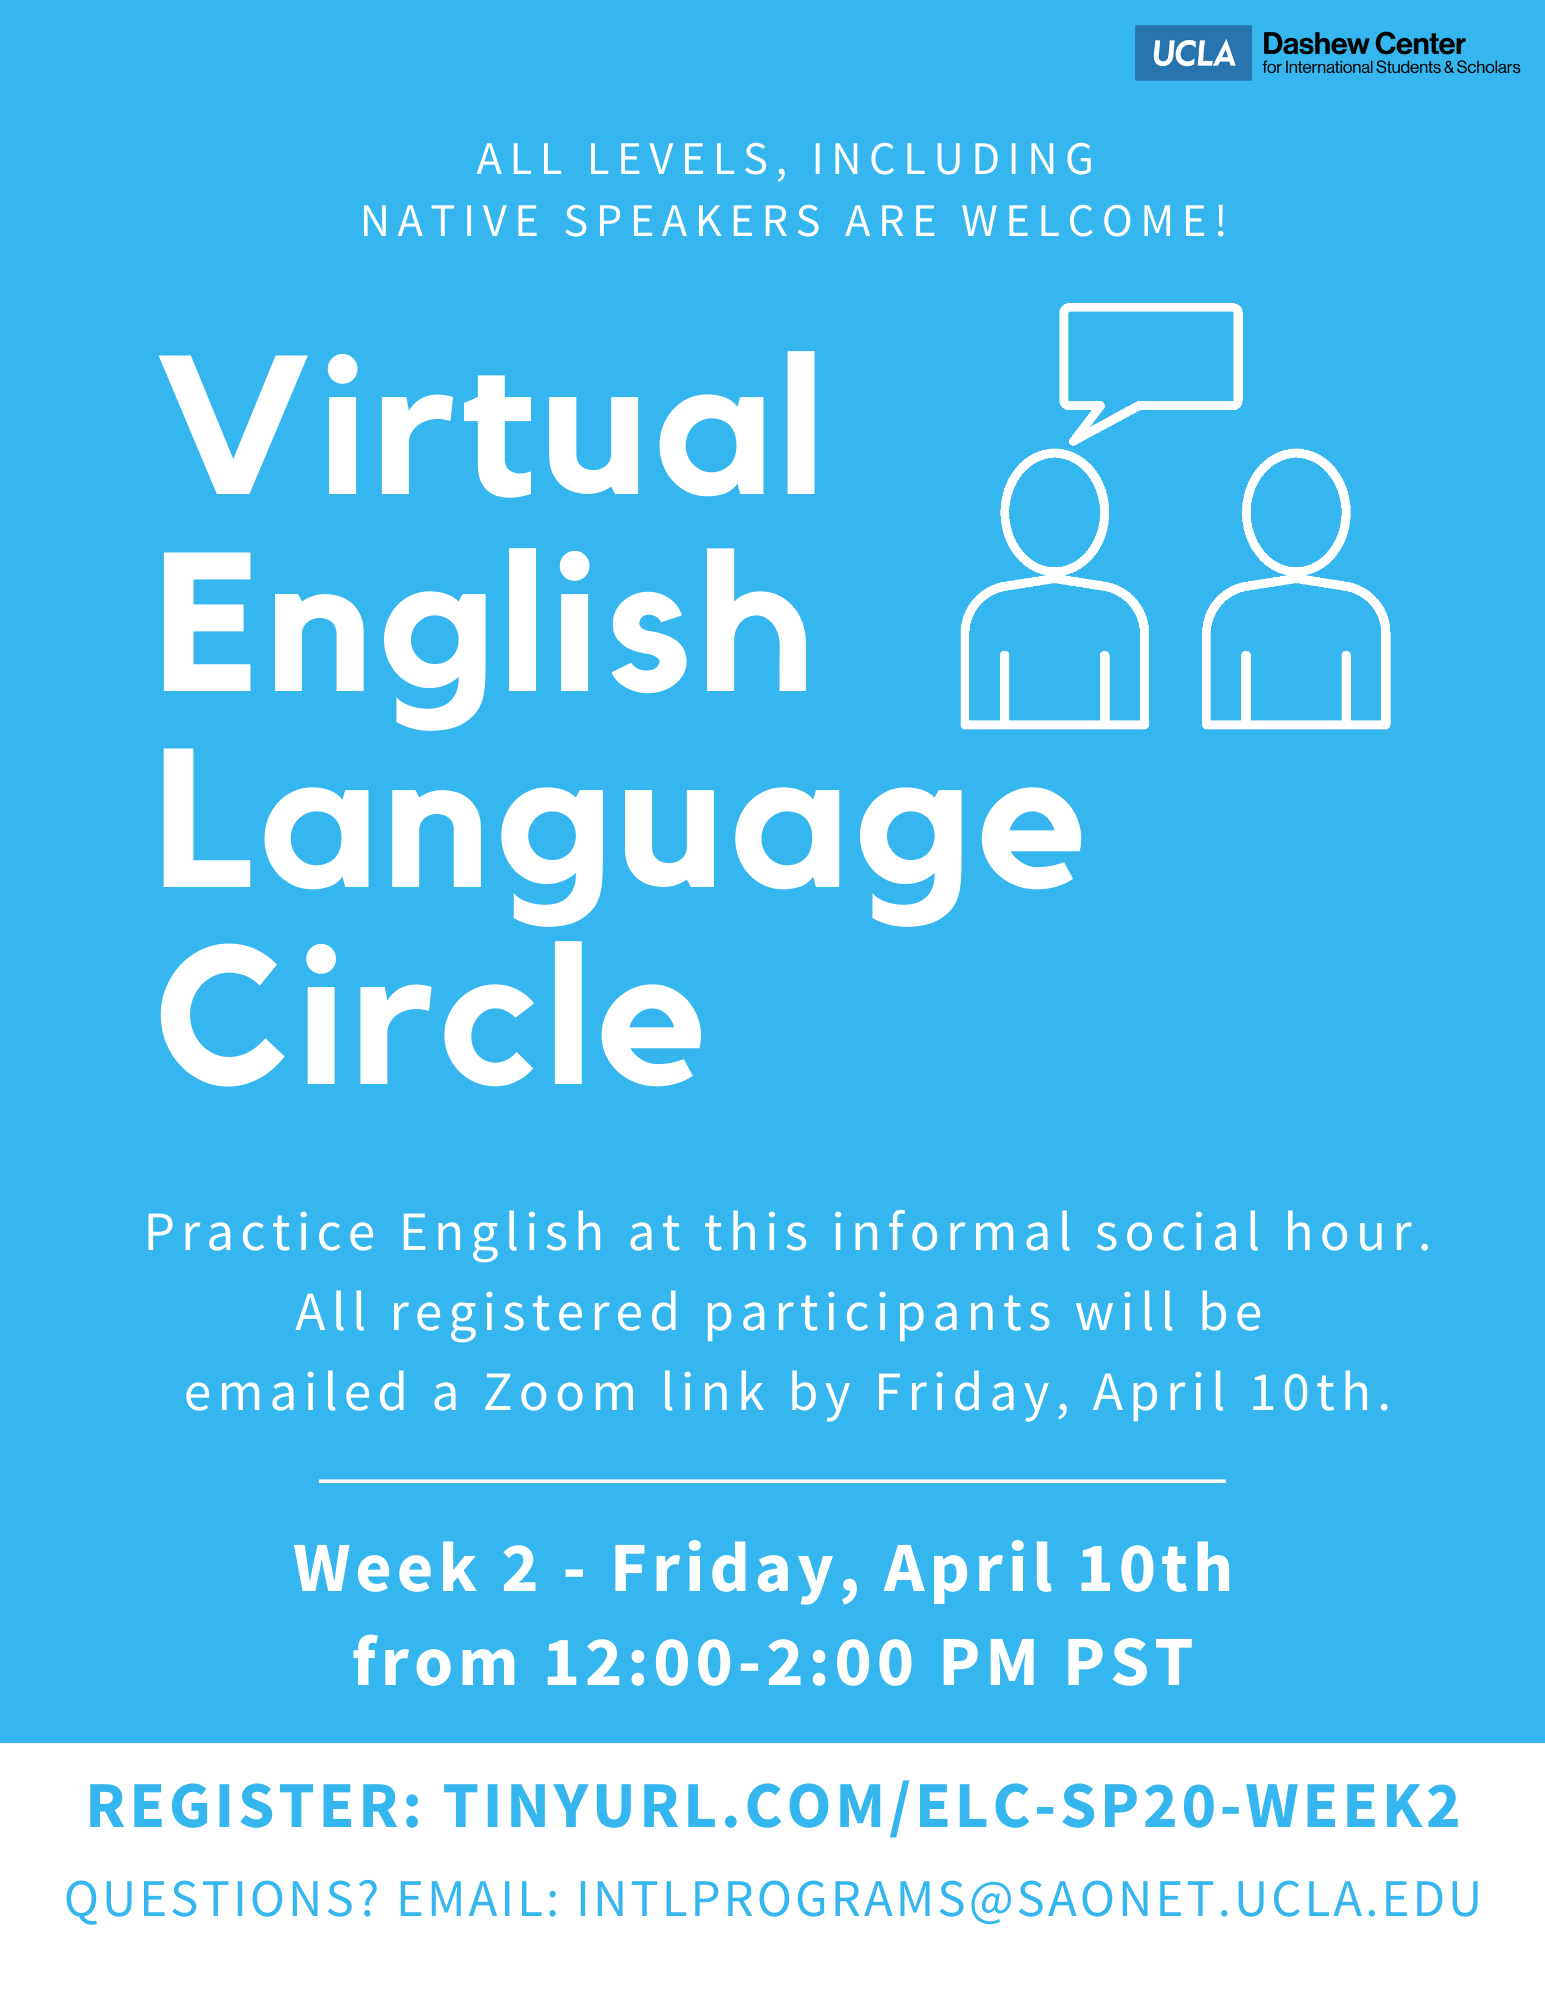 English Language Circle flyer